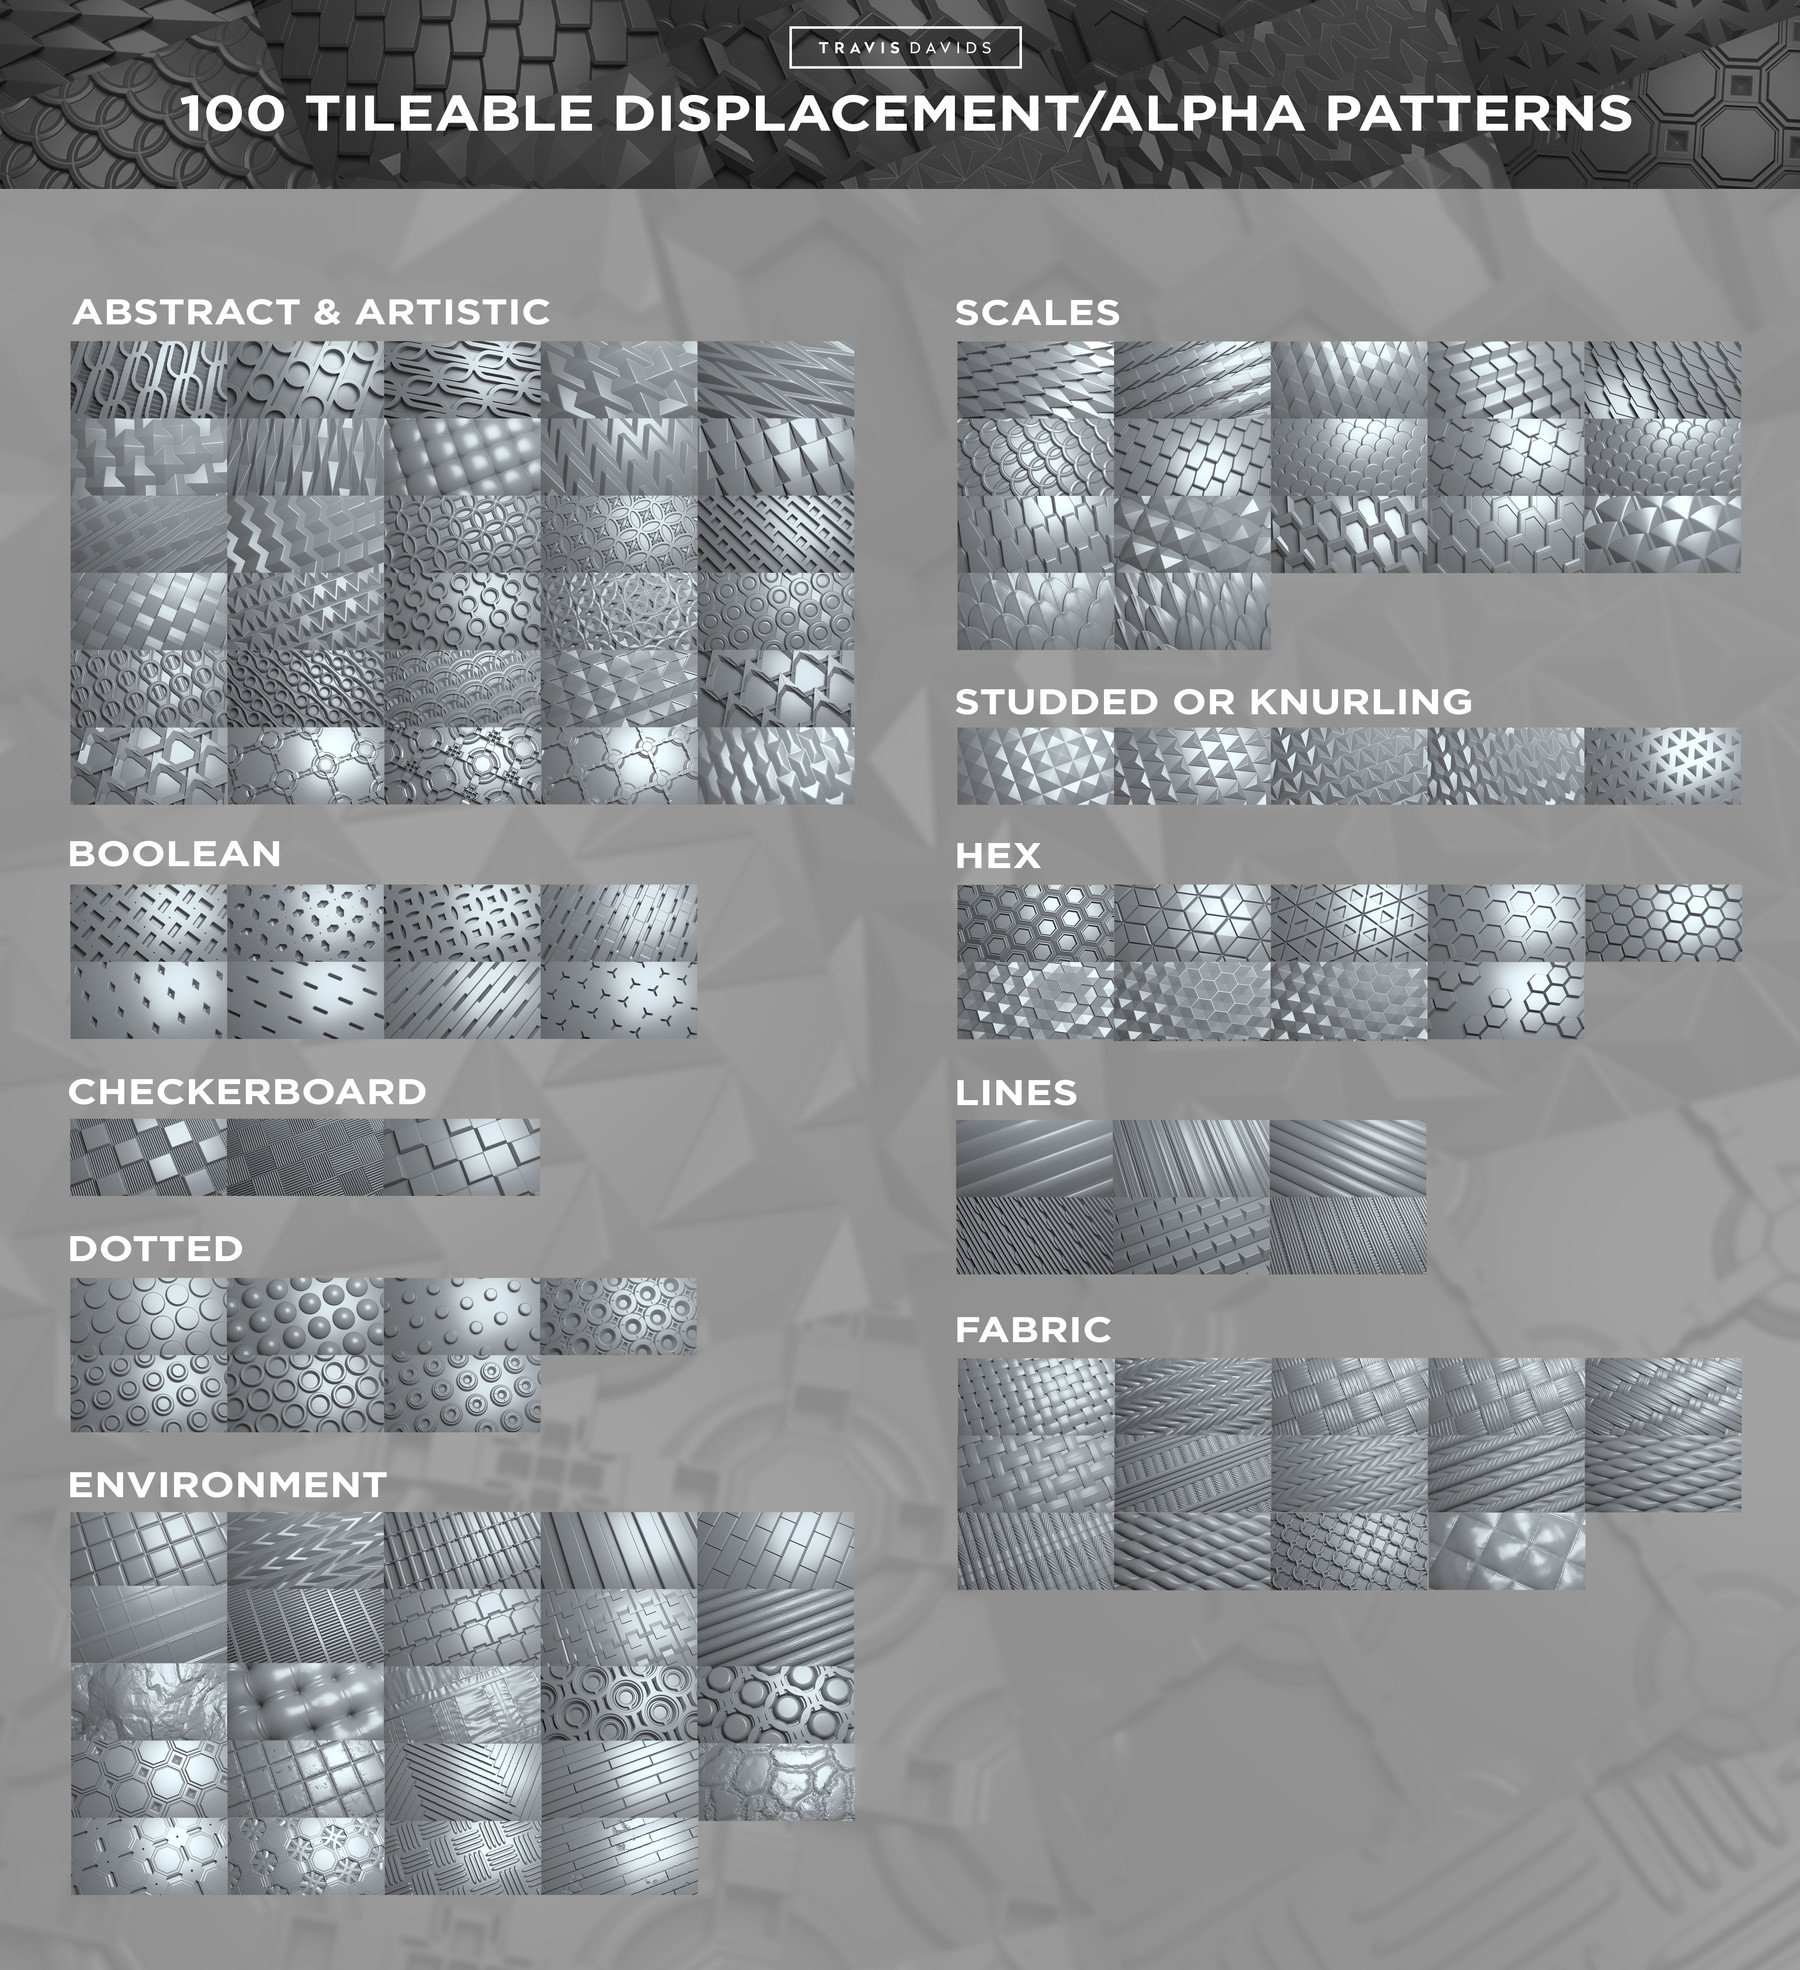 Entire collection 100 tileable displacement patterns